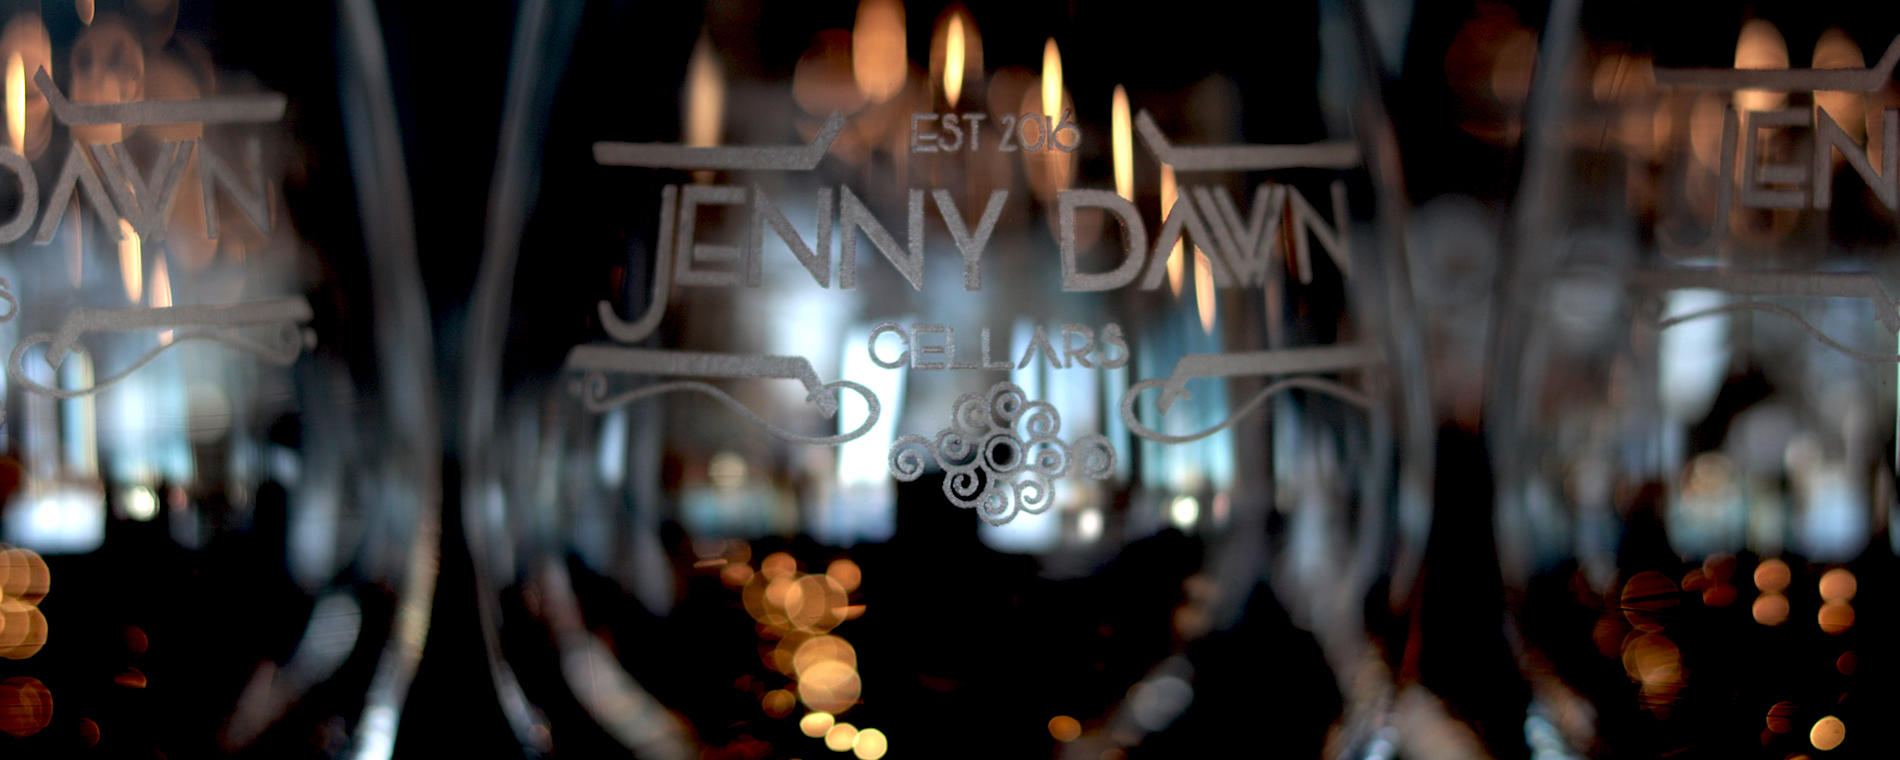 Jenny Dawn etched goblets Visit Wichigta